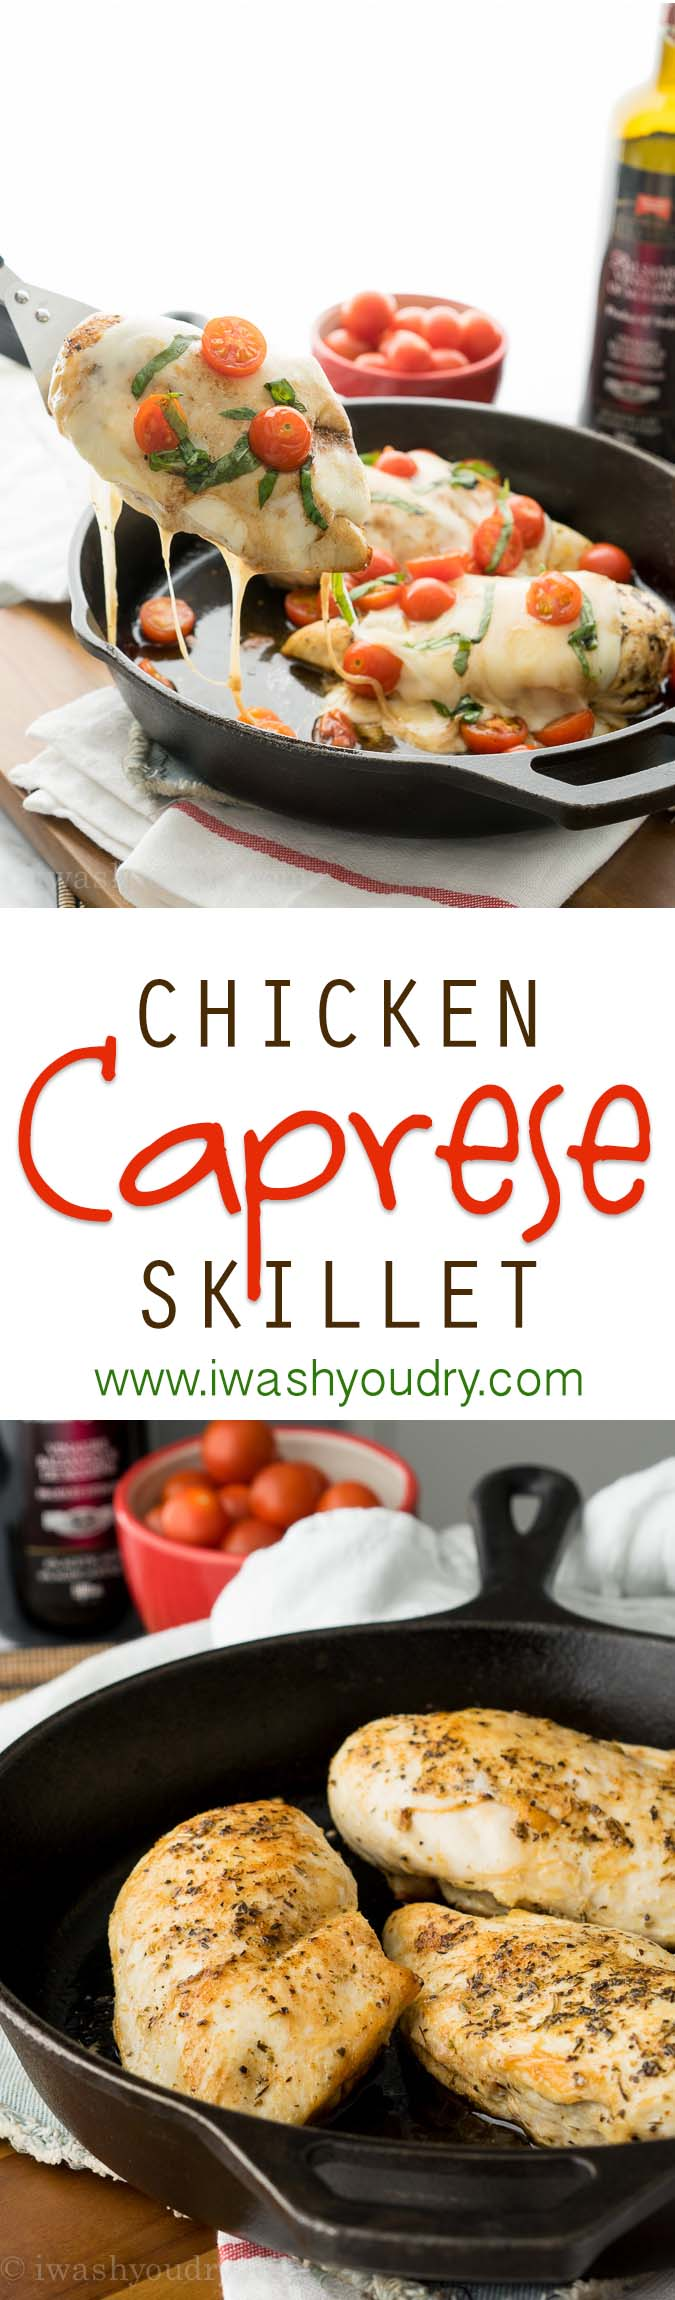 All you need is ONE SKILLET for this crazy delicious Chicken Caprese Skillet recipe. My family loves this one!